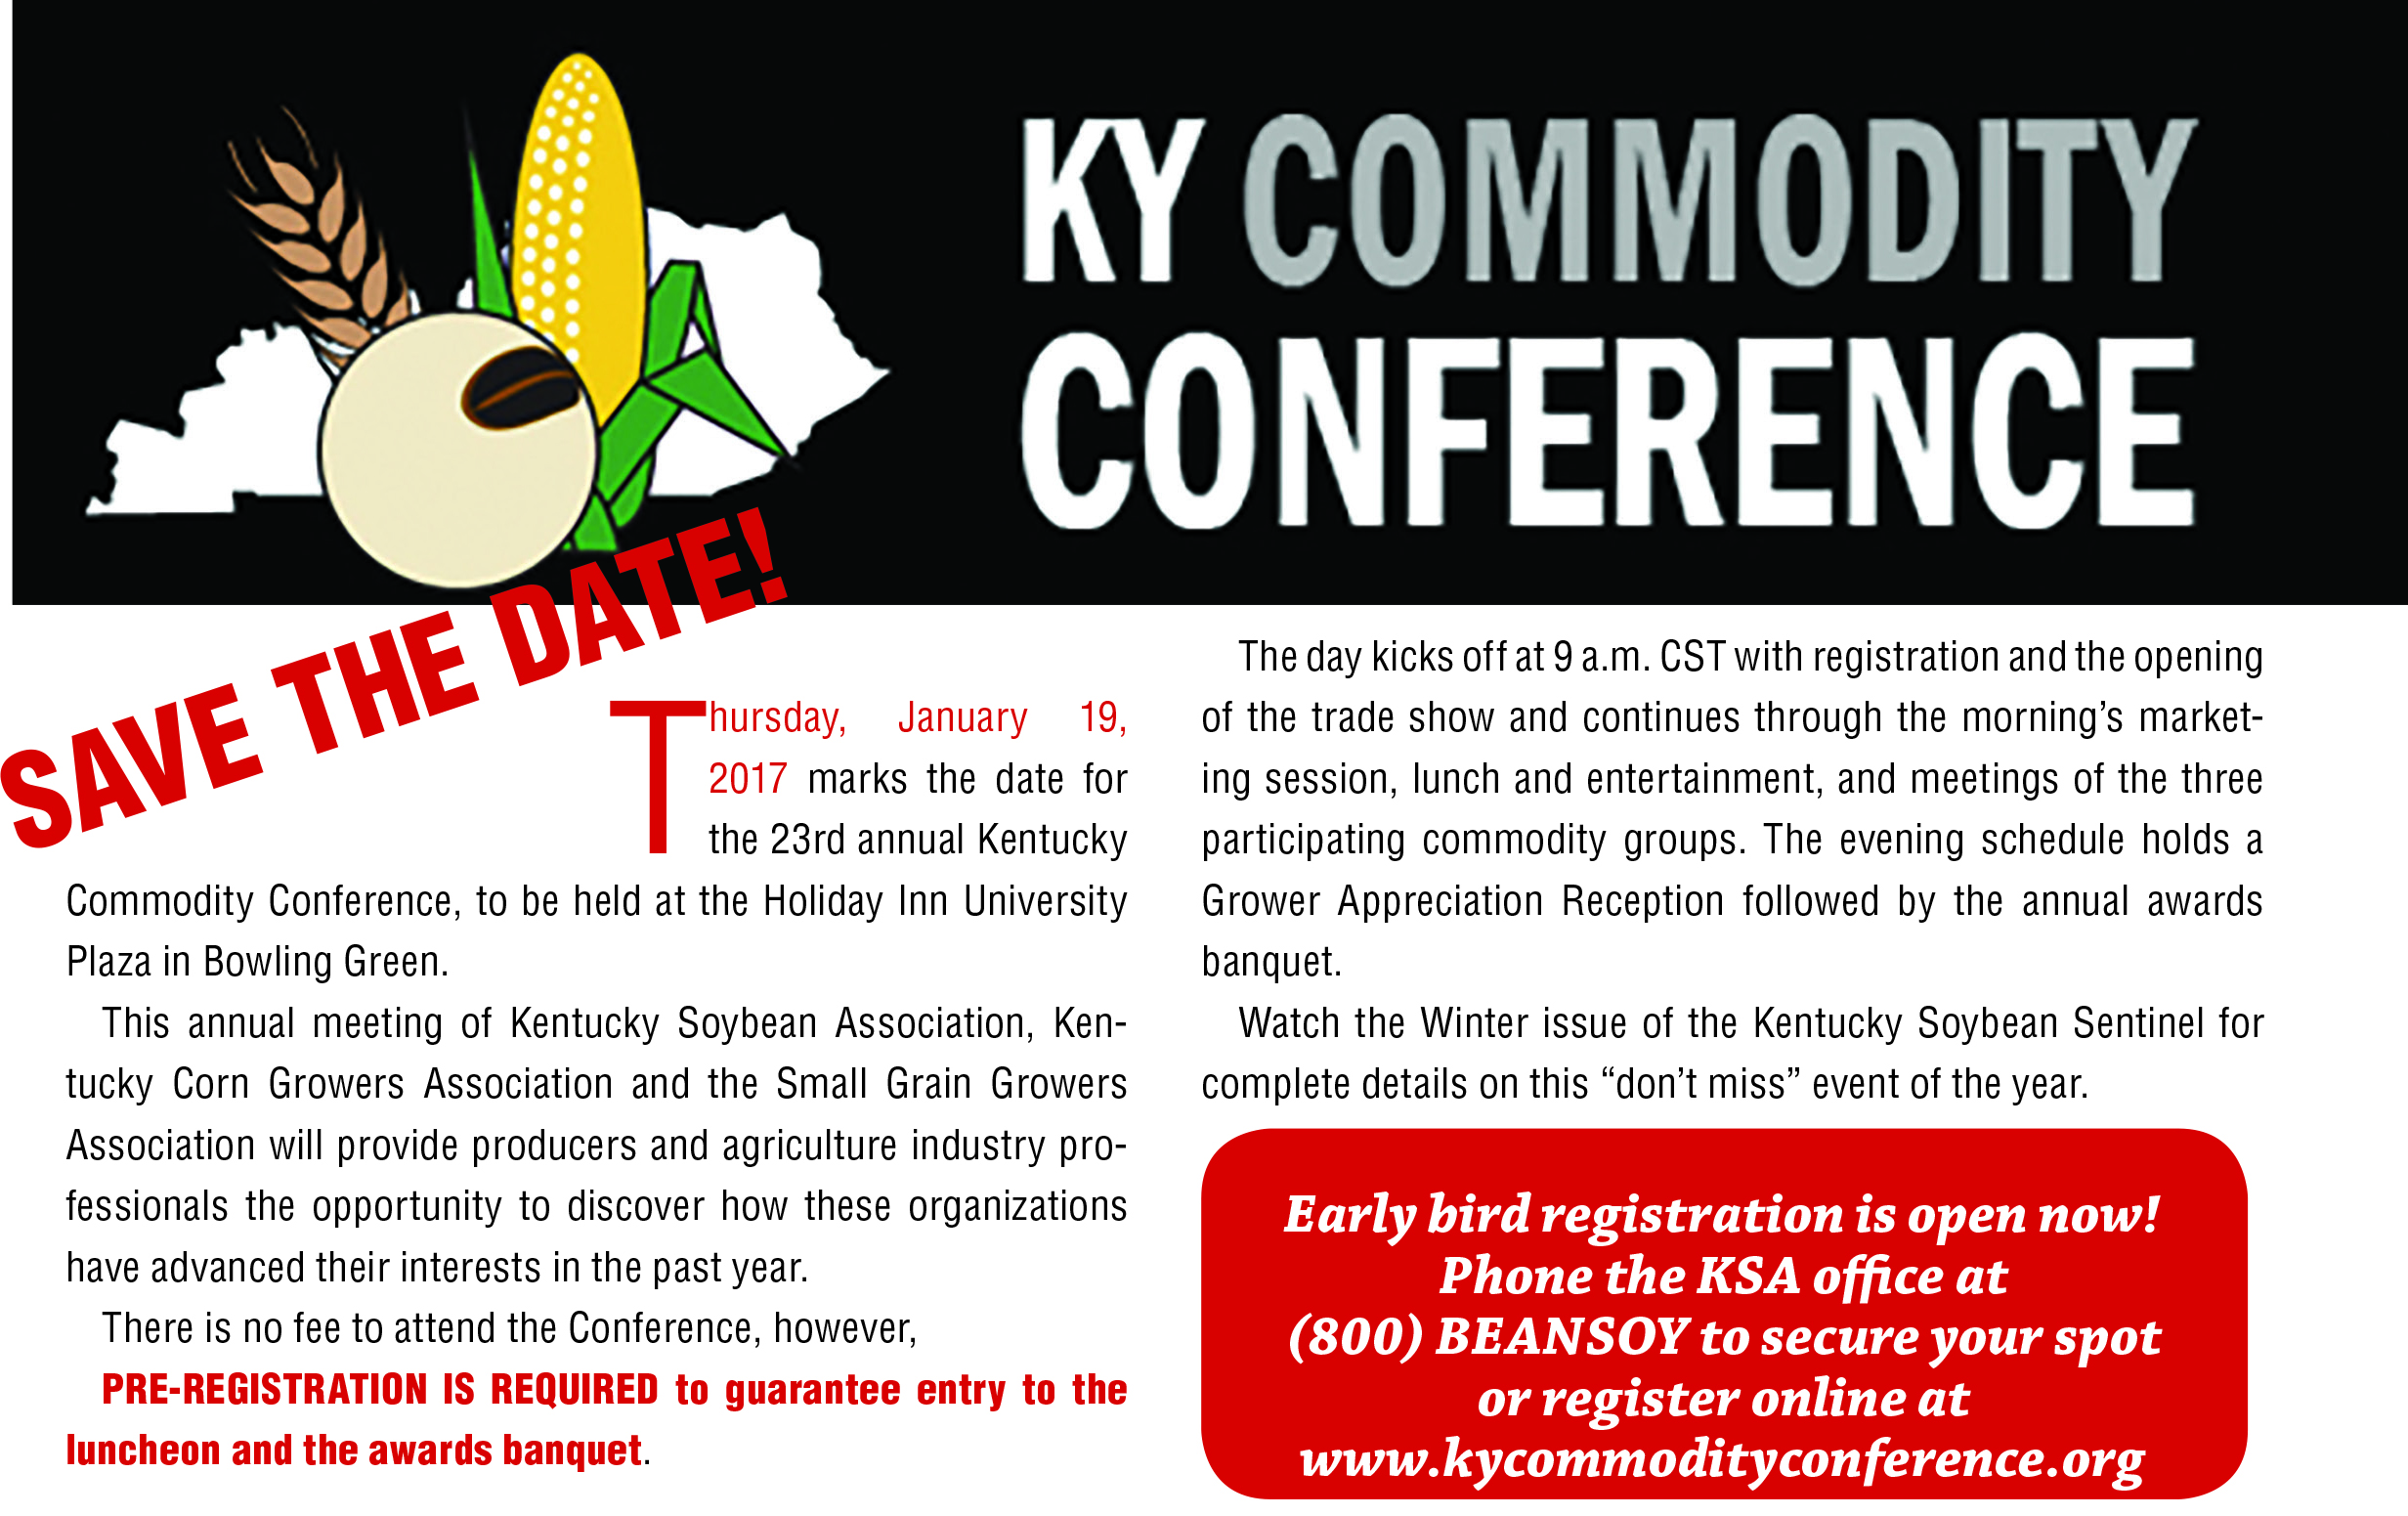 Commodity Conference